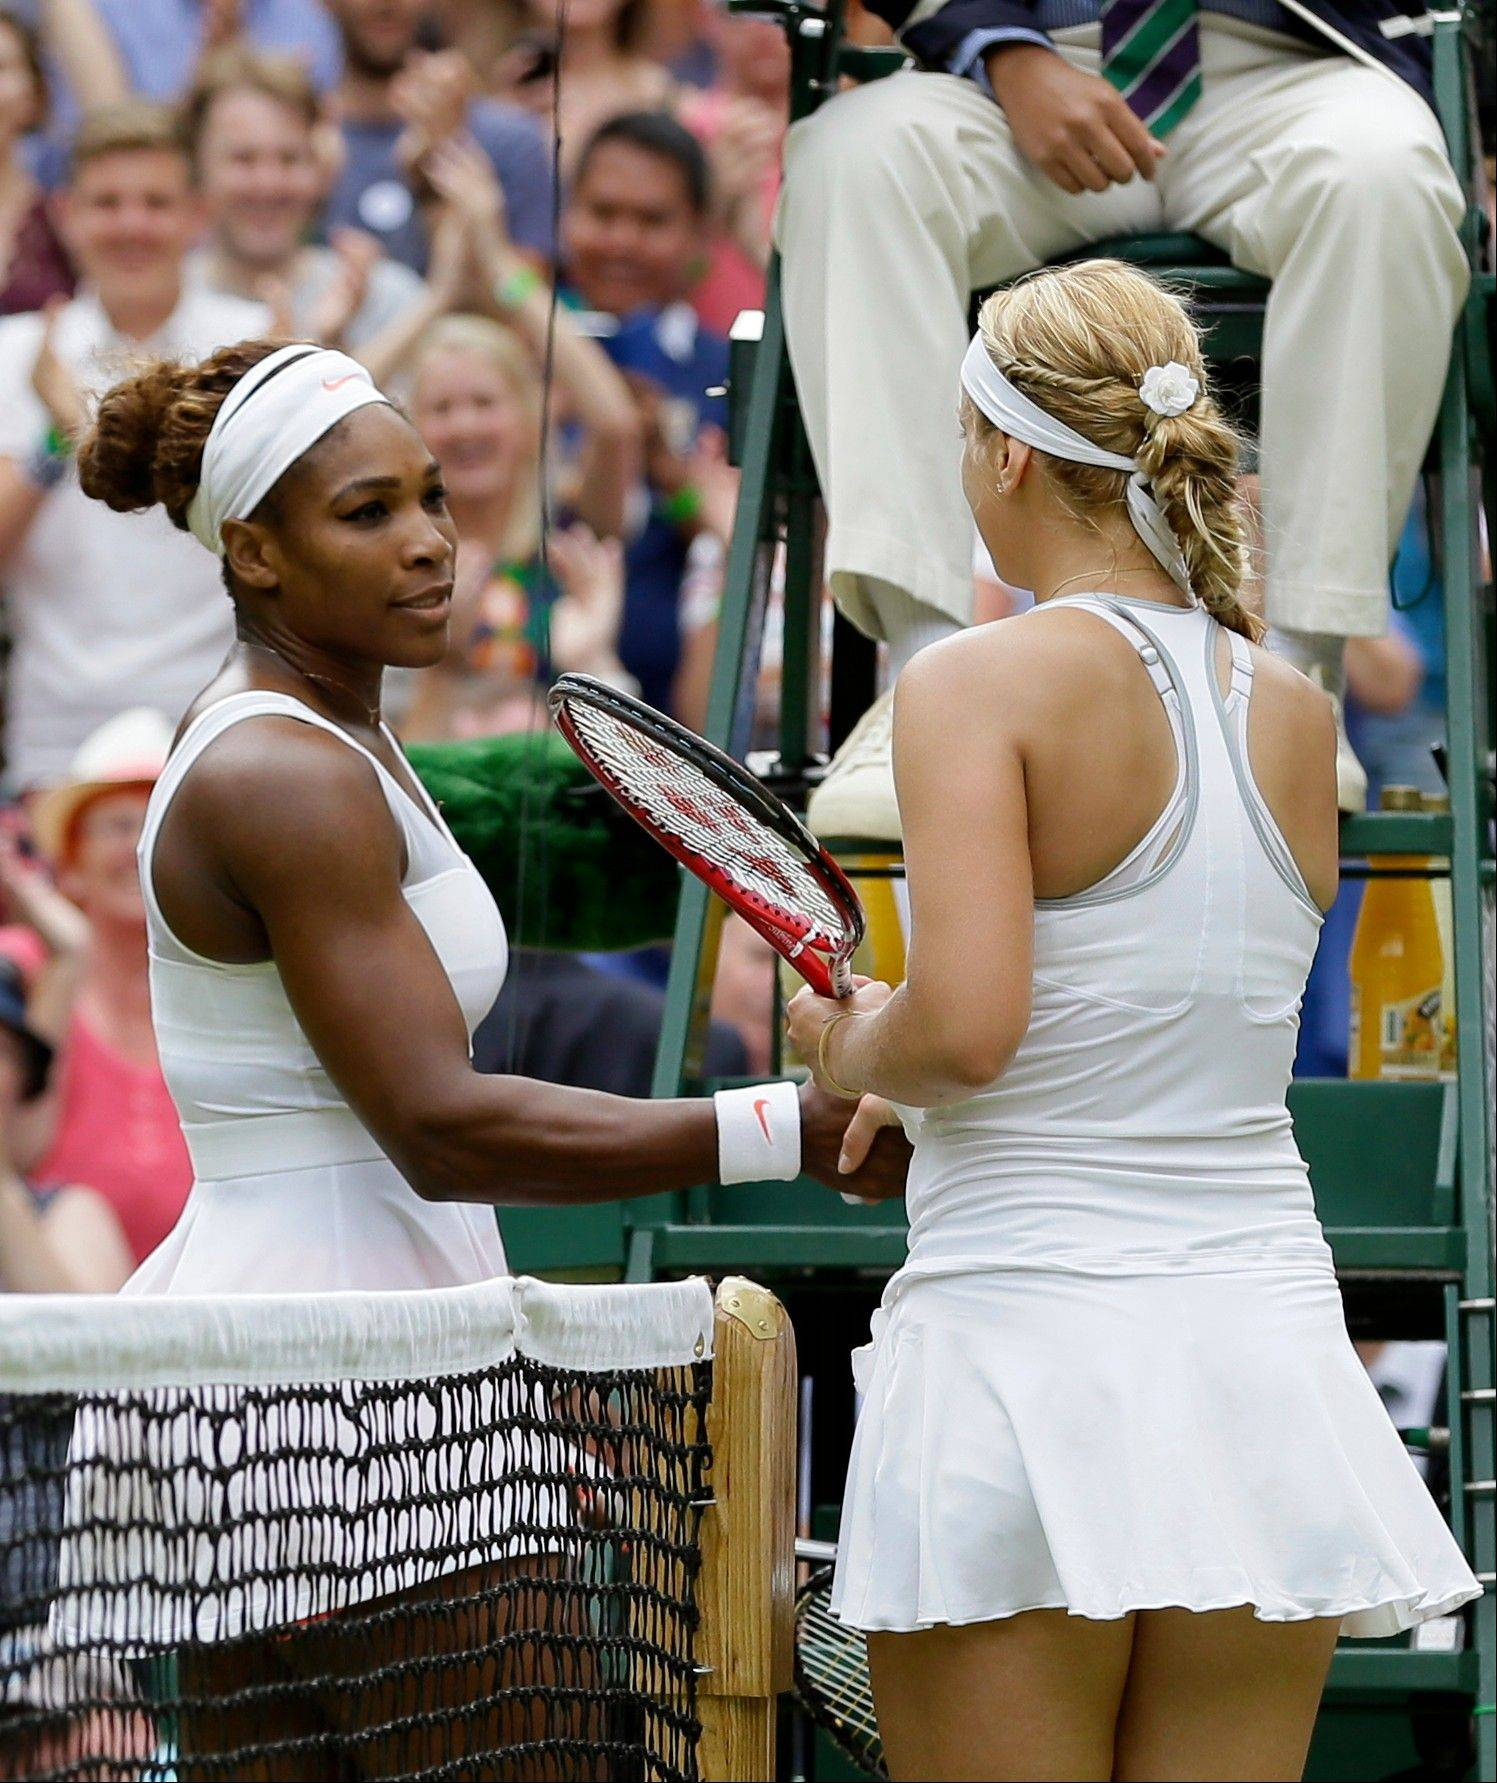 Sabine Lisicki beat Serena Williams 6-2, 1-6, 6-4 in the fourth round of Wimbledon.